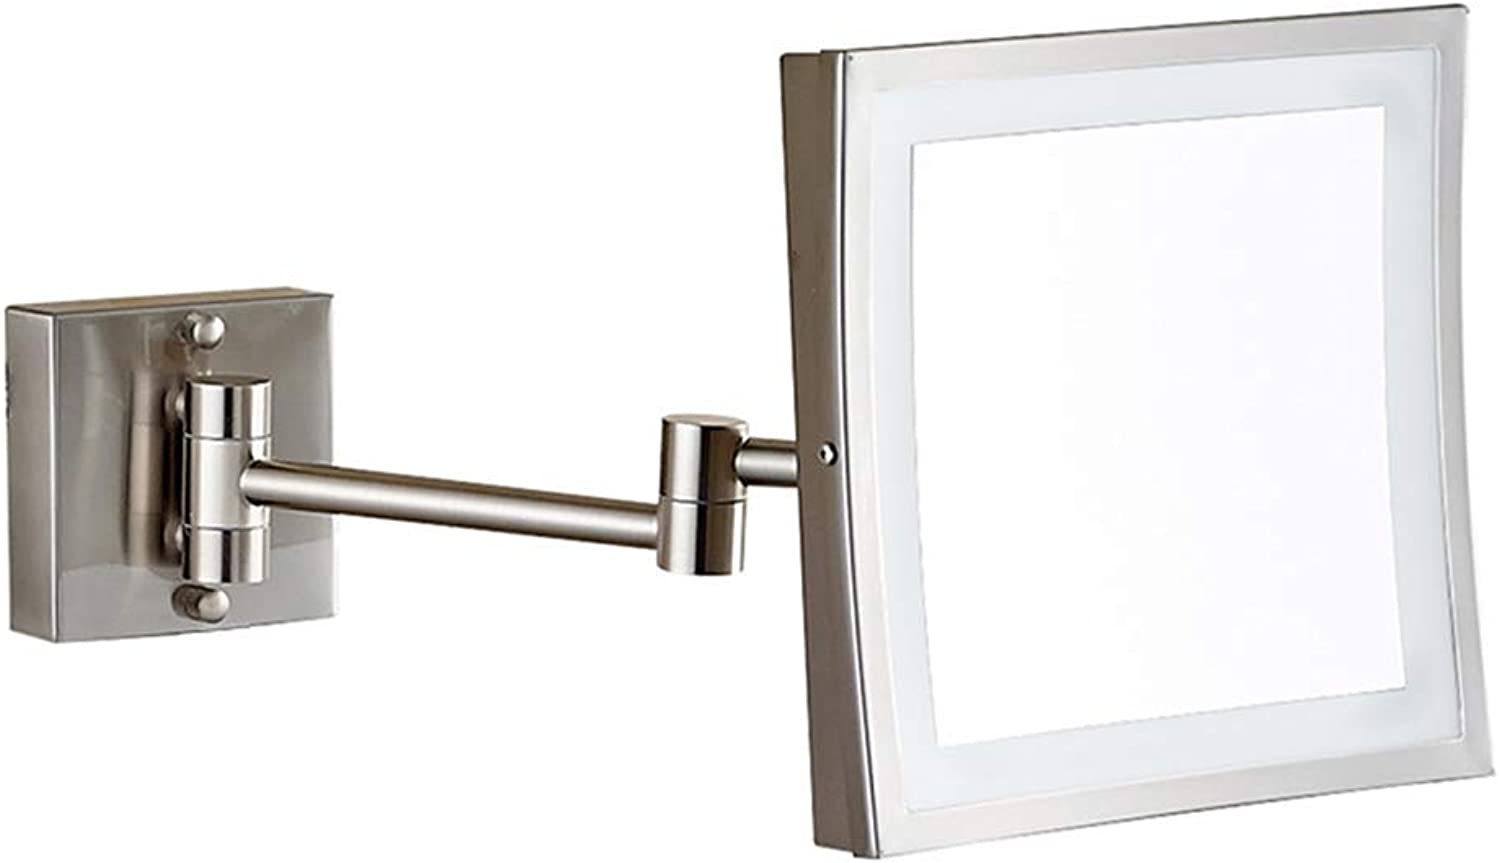 8  Led Lighted Wall Mount Makeup Mirror, 360° Swivel Folding 3X Magnification Bathroom Mirror, Rectangle